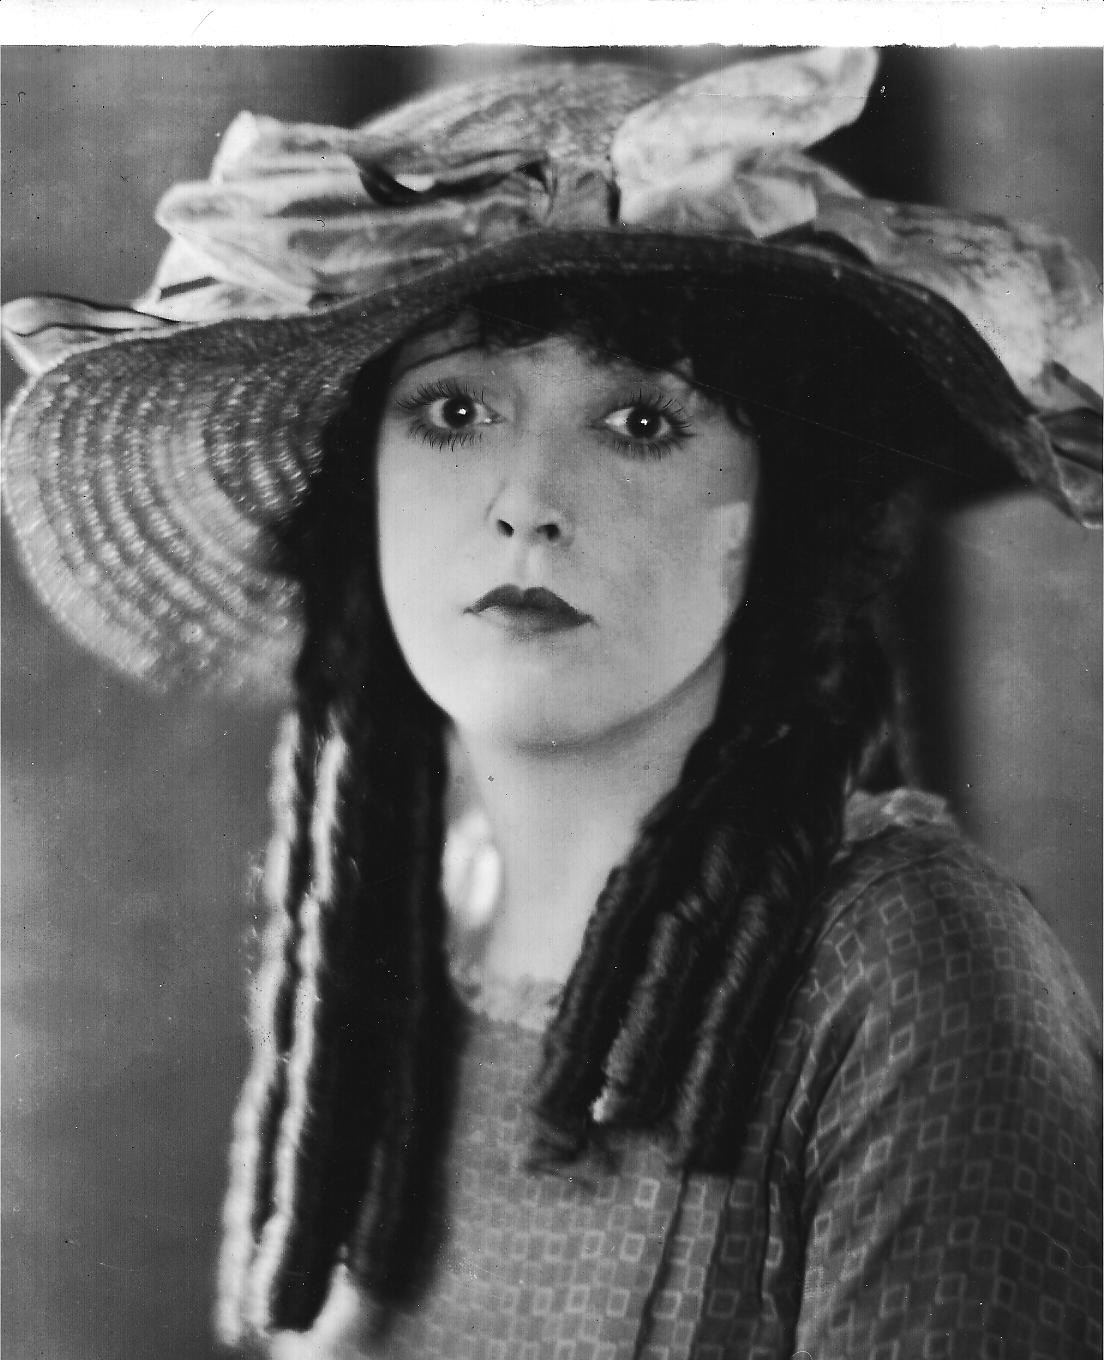 Mabel Normand EXTRA GIRL IN NY Looking for Mabel Normand